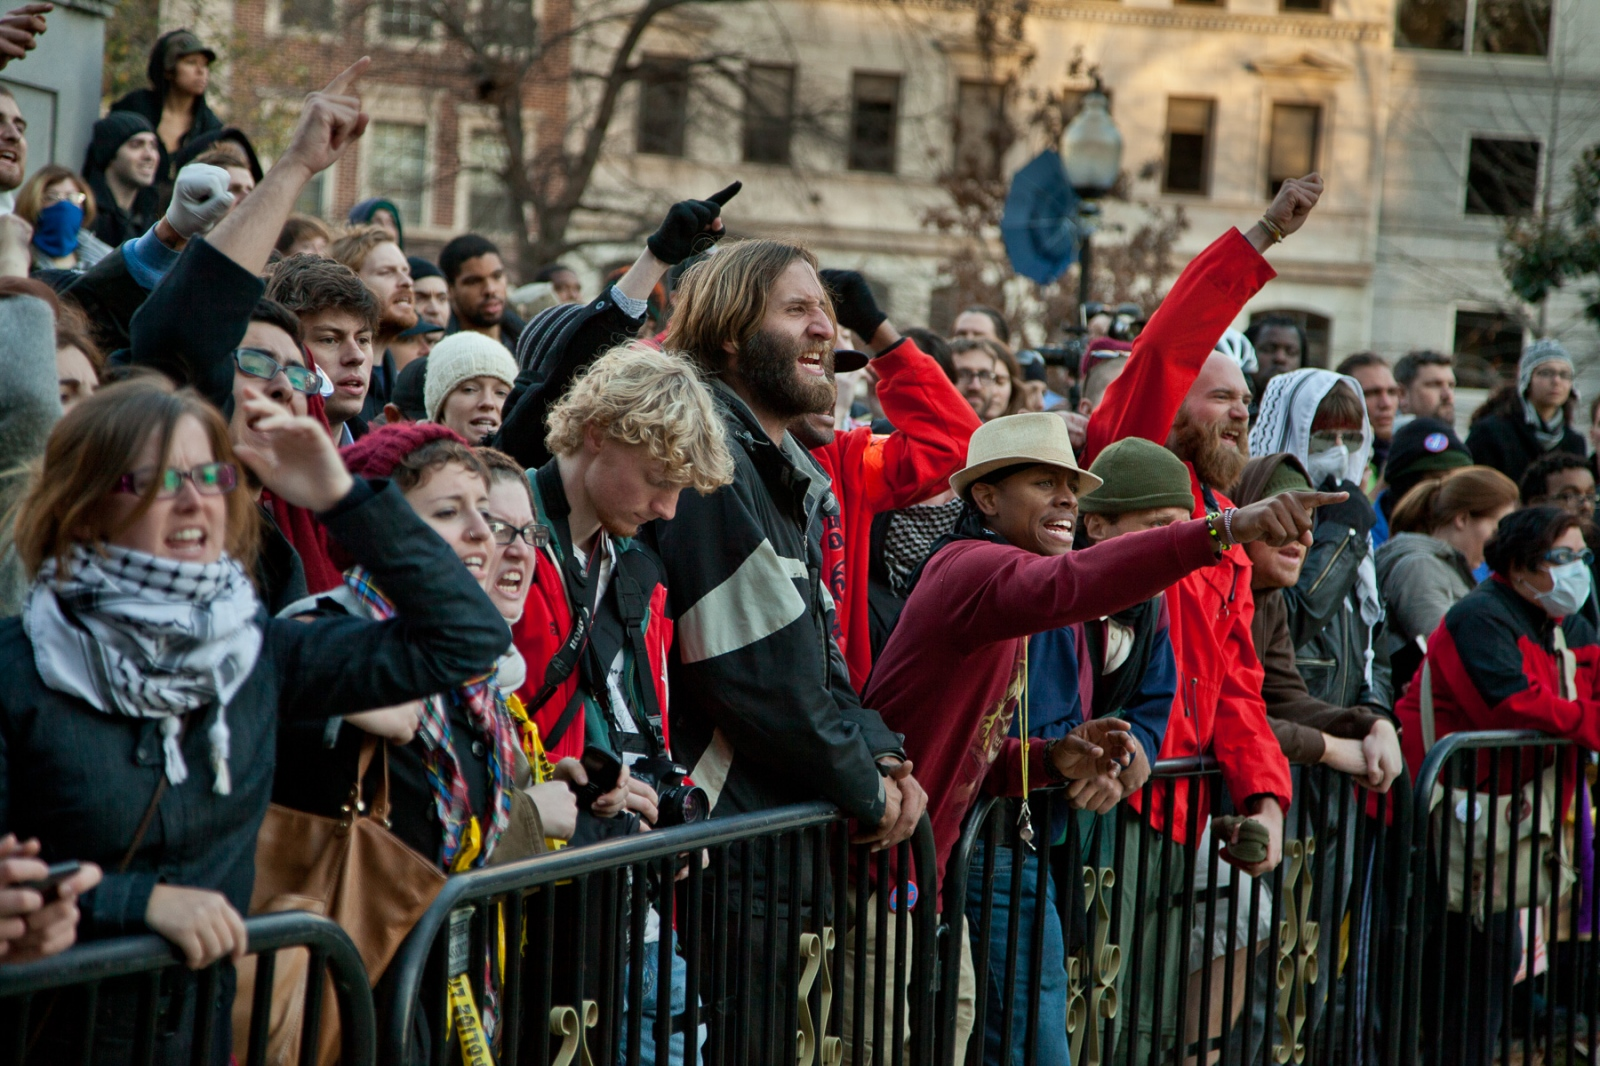 Angry Occupy D.C. protestors scream at U.S. Park Police, who are preparing to arrest demonstrators barricaded in a wooden structure they errected overnight.